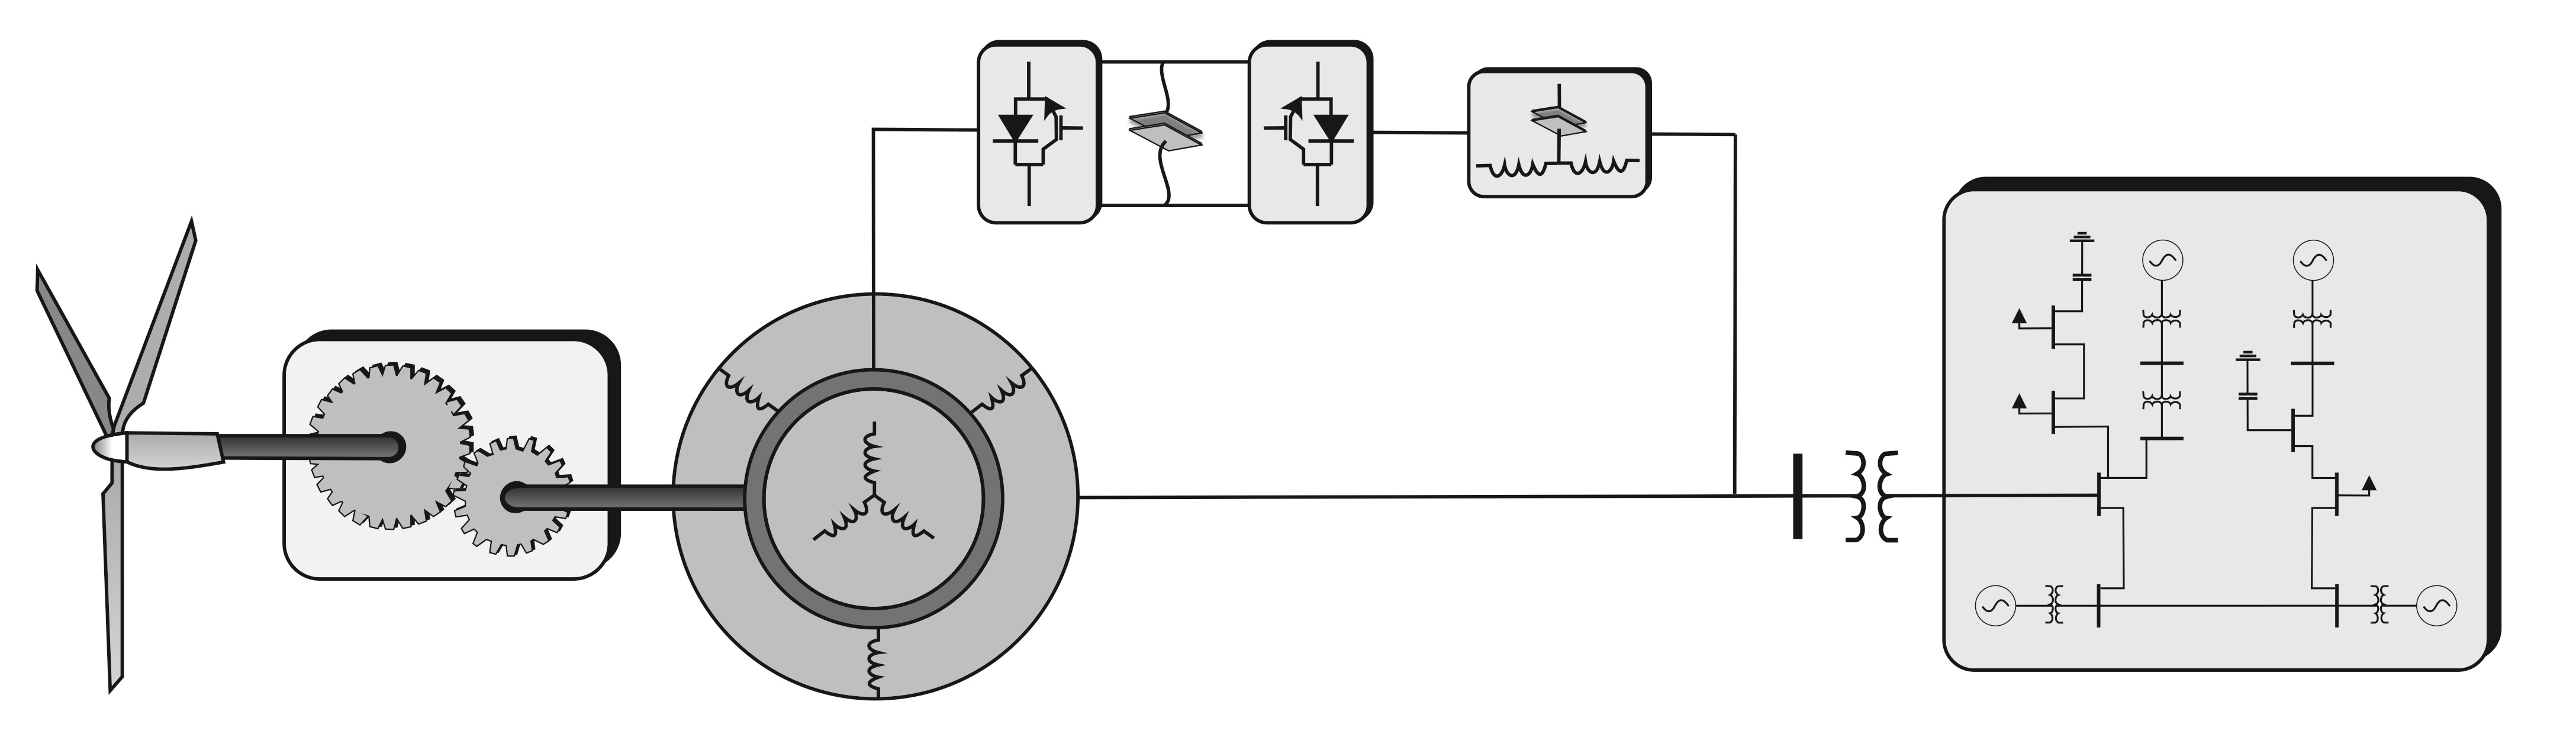 Universidade Federal De Minas Gerais Modeling Of Full Converter Controllers For A Doublyfed Wind Power System National Instruments Turbine Technologies 7 The Converters Used Have Only Portion Around 25